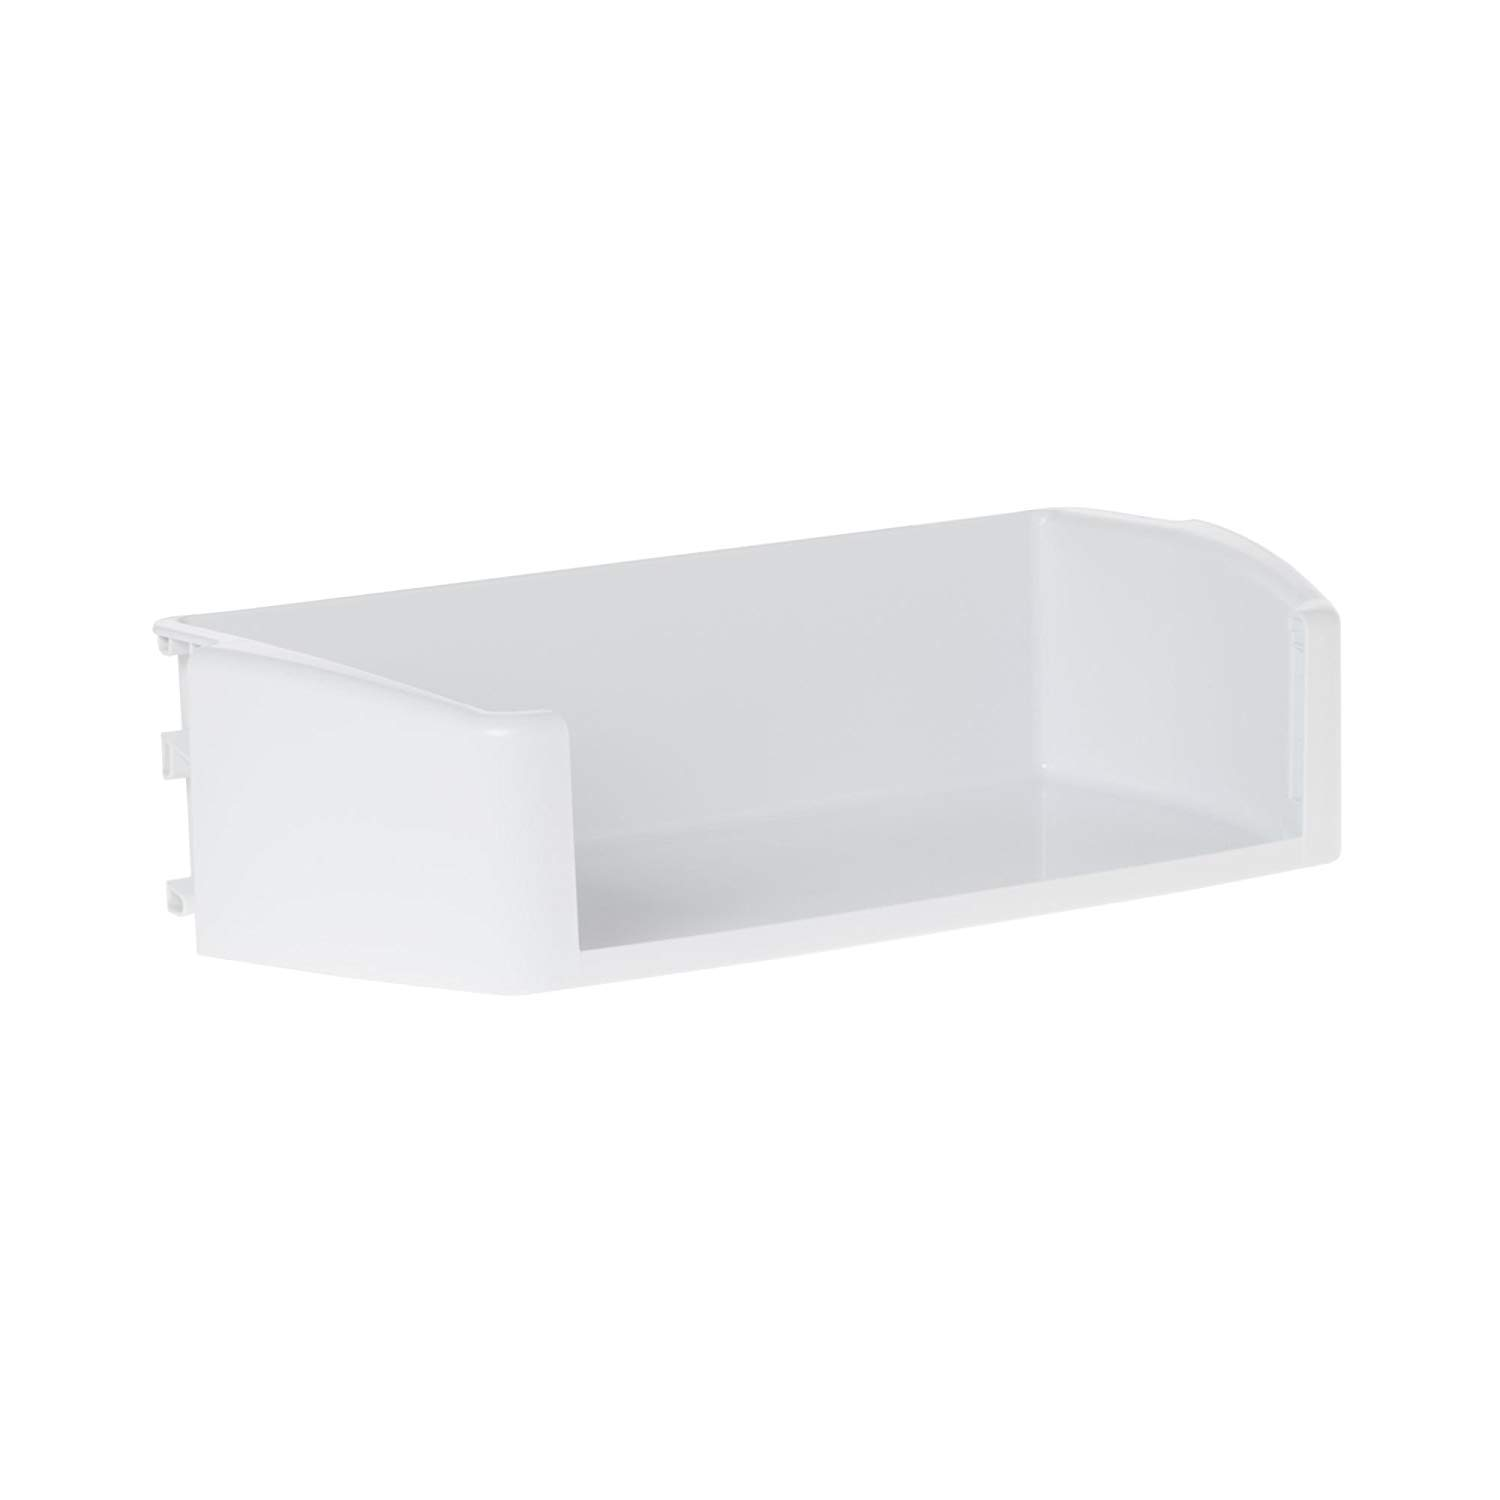 Lifetime Appliance WR71X10973 Door Bin Module Shelf Compatible with General Electric (GE) Refrigerator